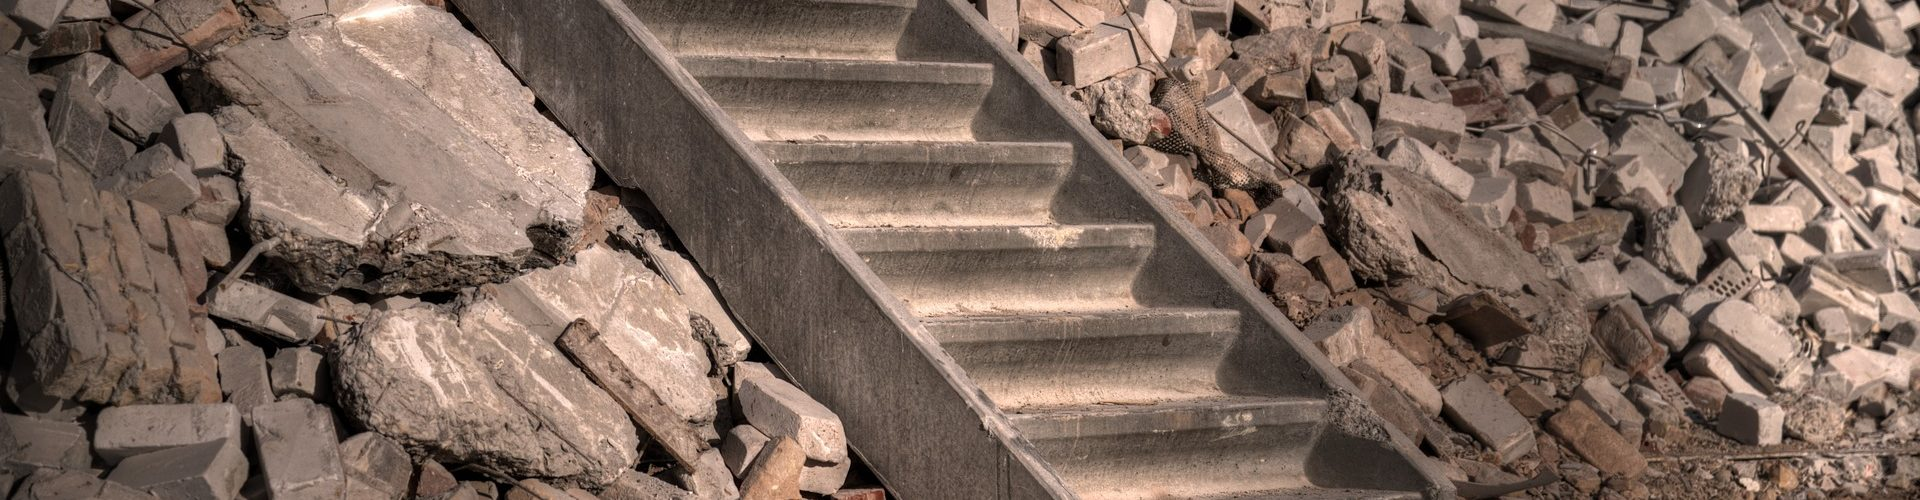 stairs within rubble